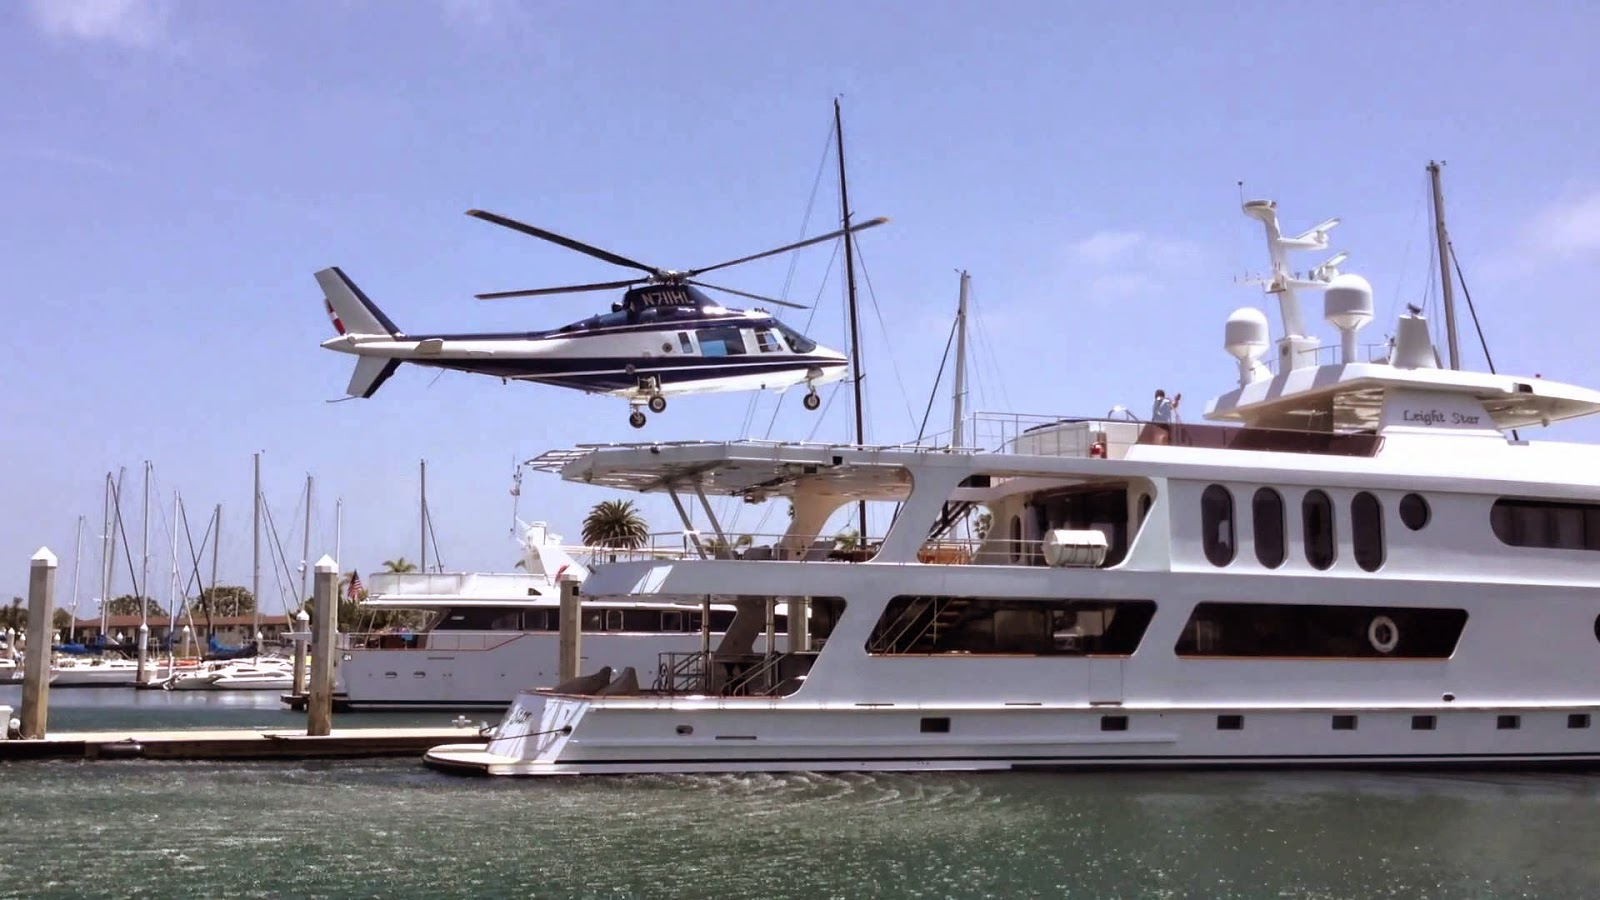 Howard Leight's Private Yacht and Helicopter